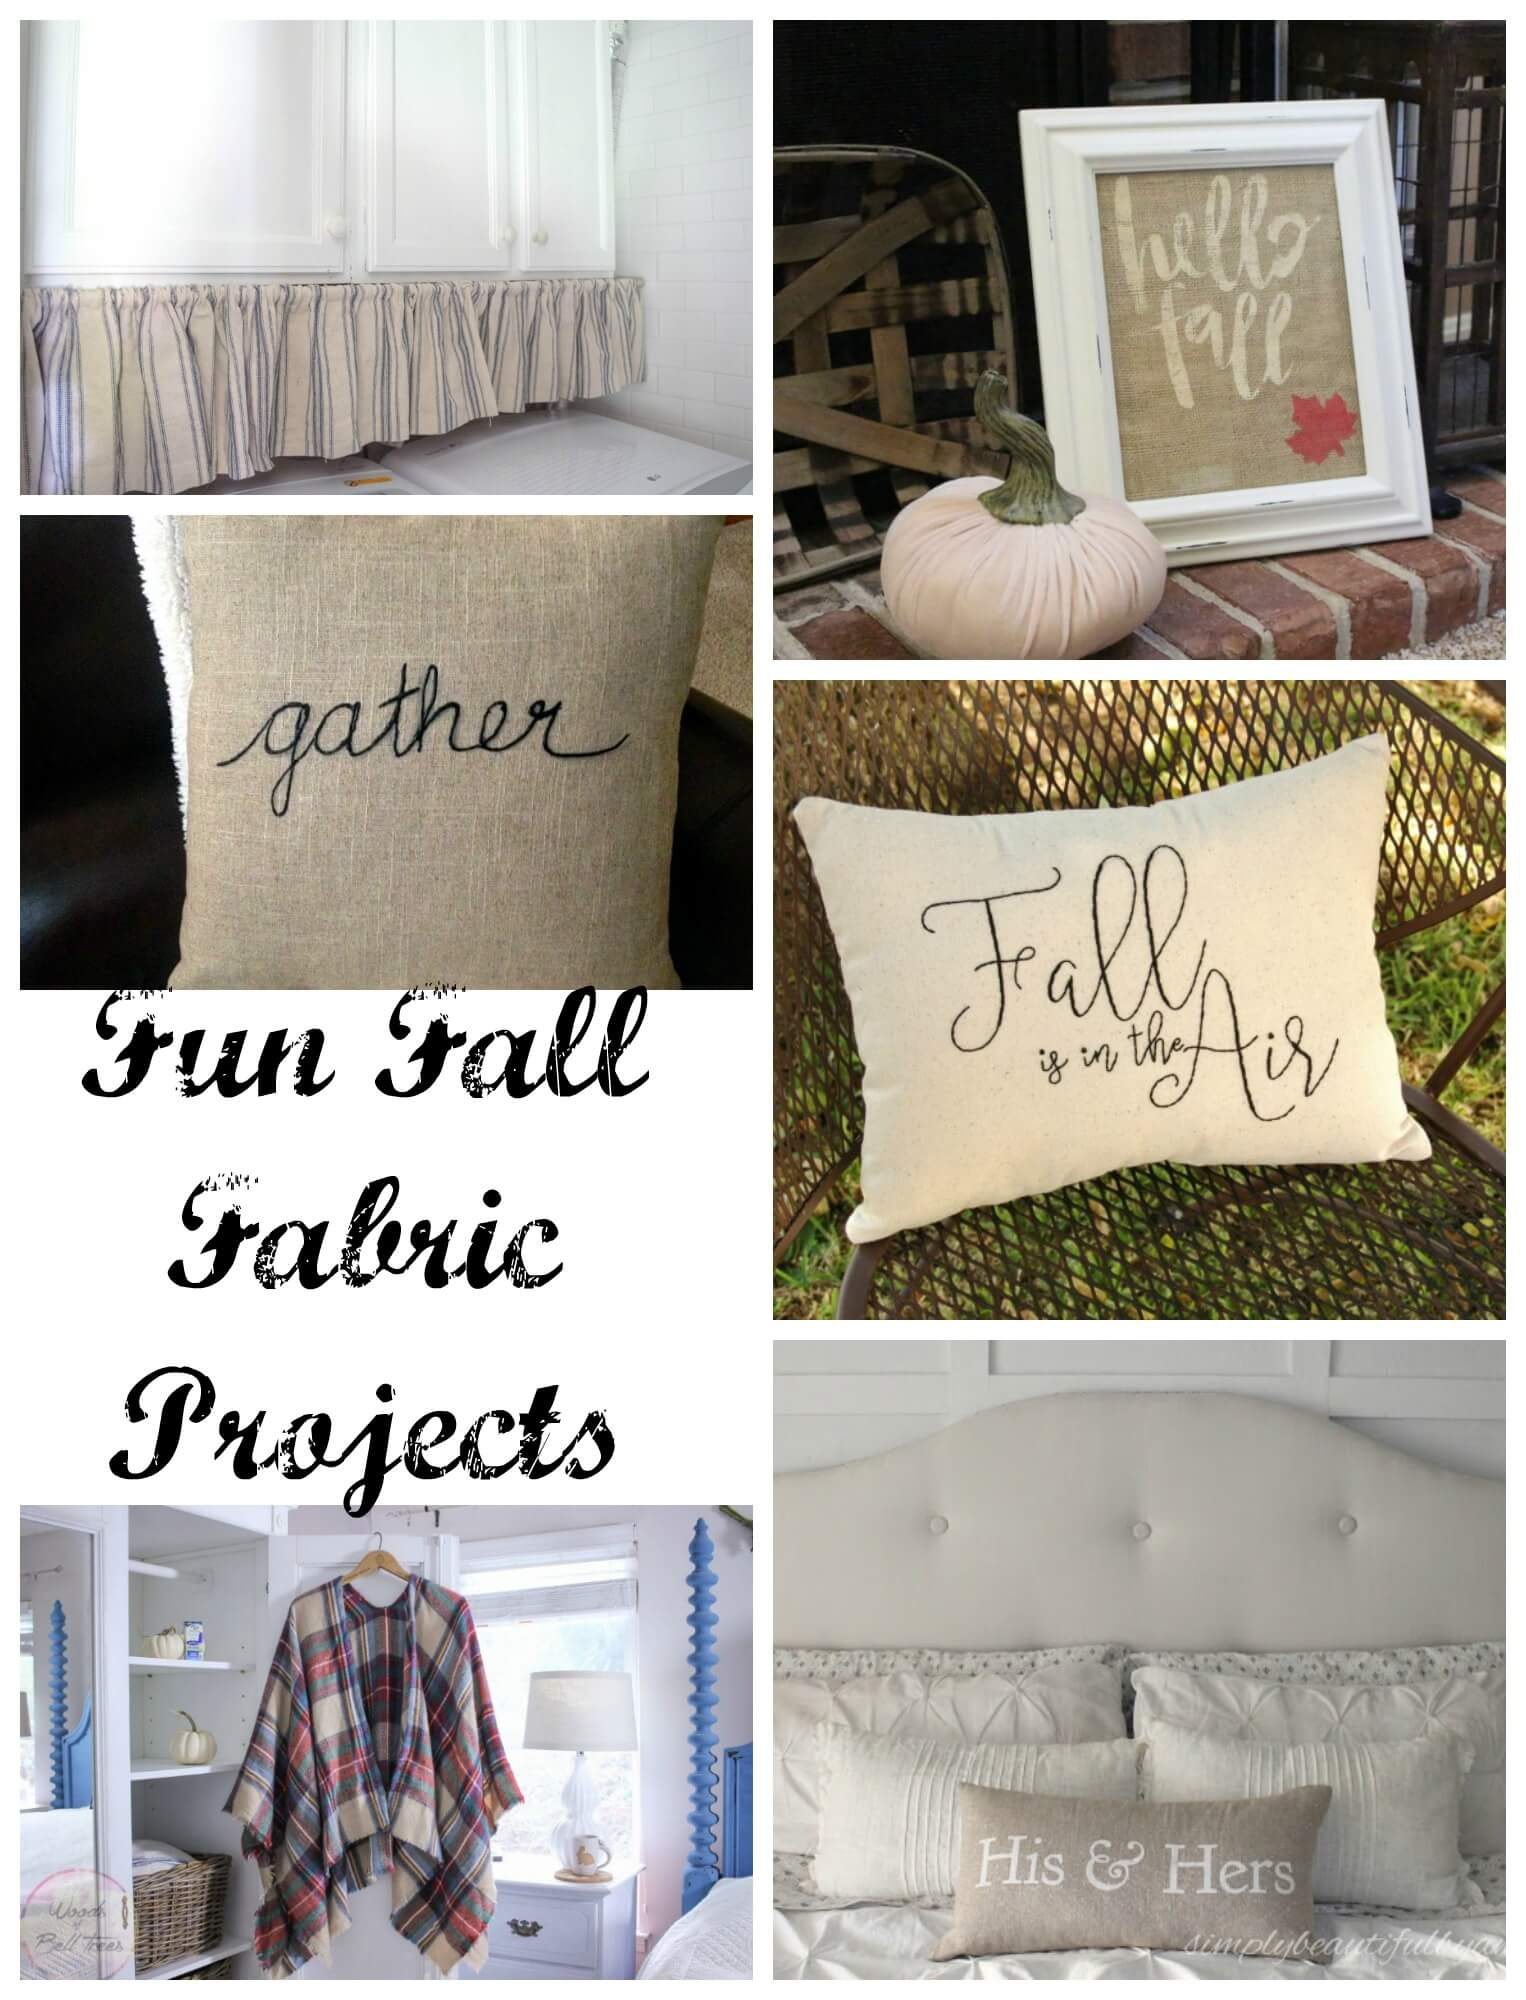 Fun Fall Fabric Projects from Nap-Time Creations